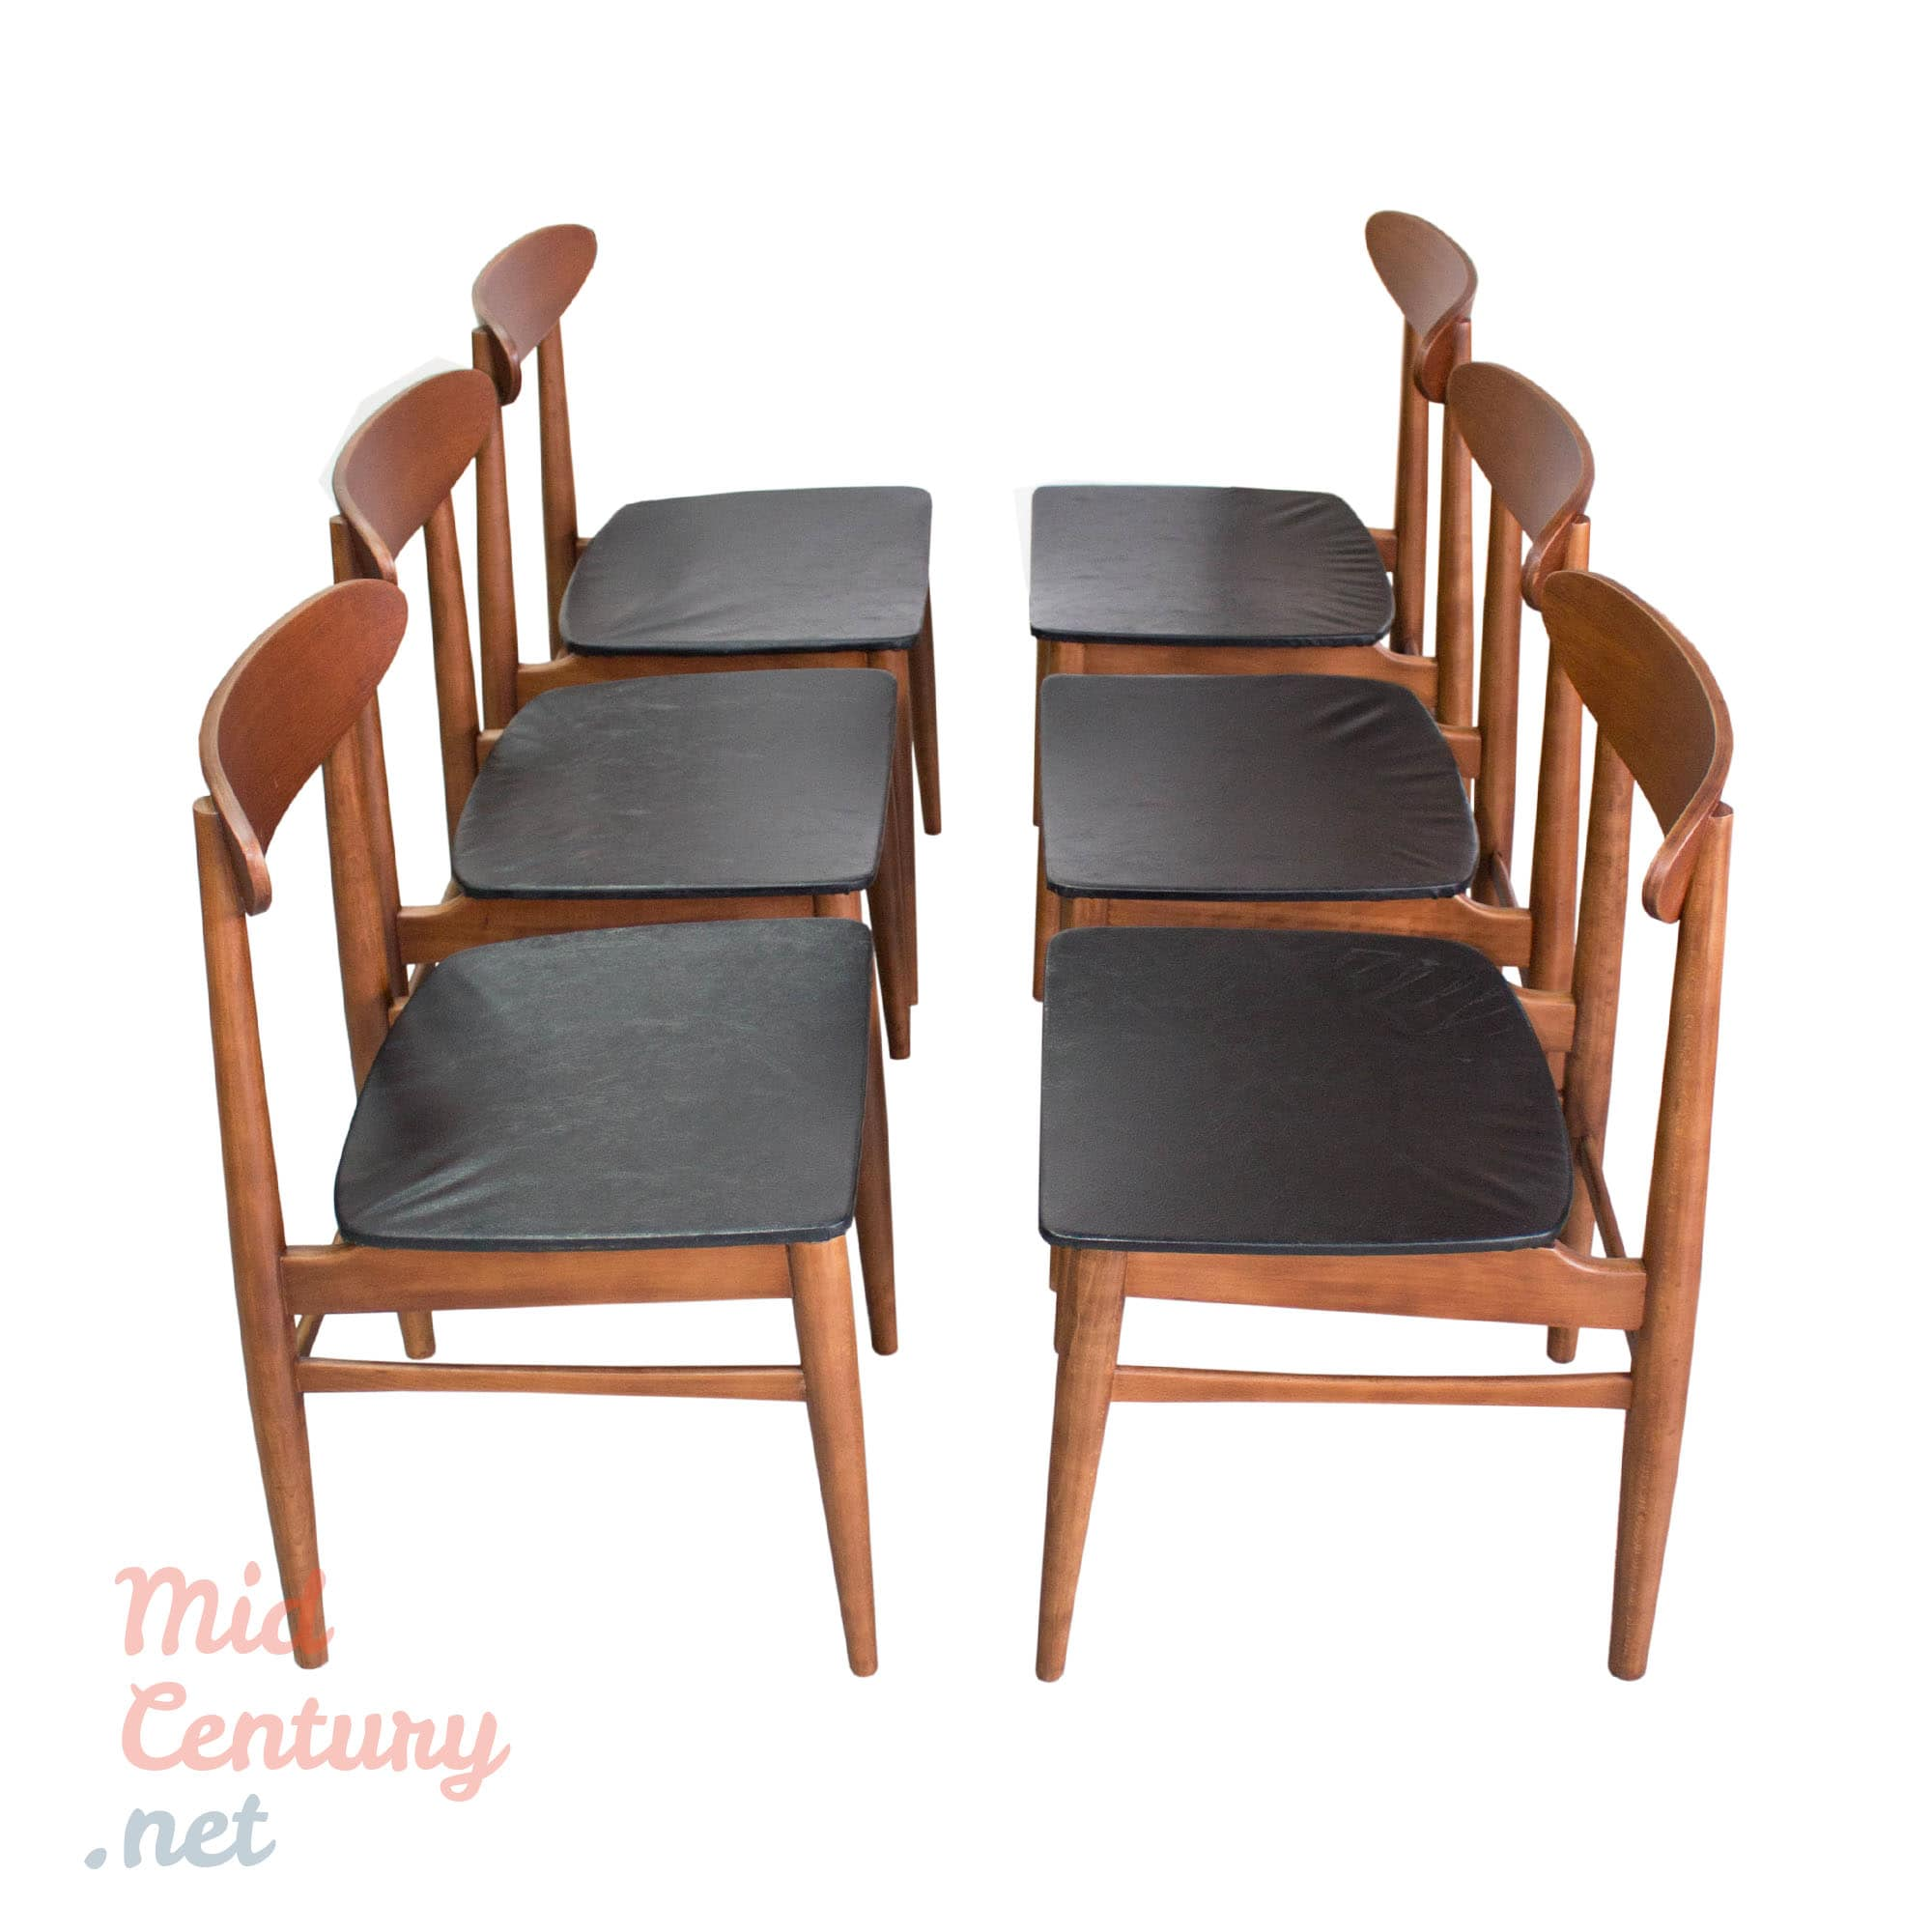 Set of 6 Danish teak dining chairs made in the 1960s